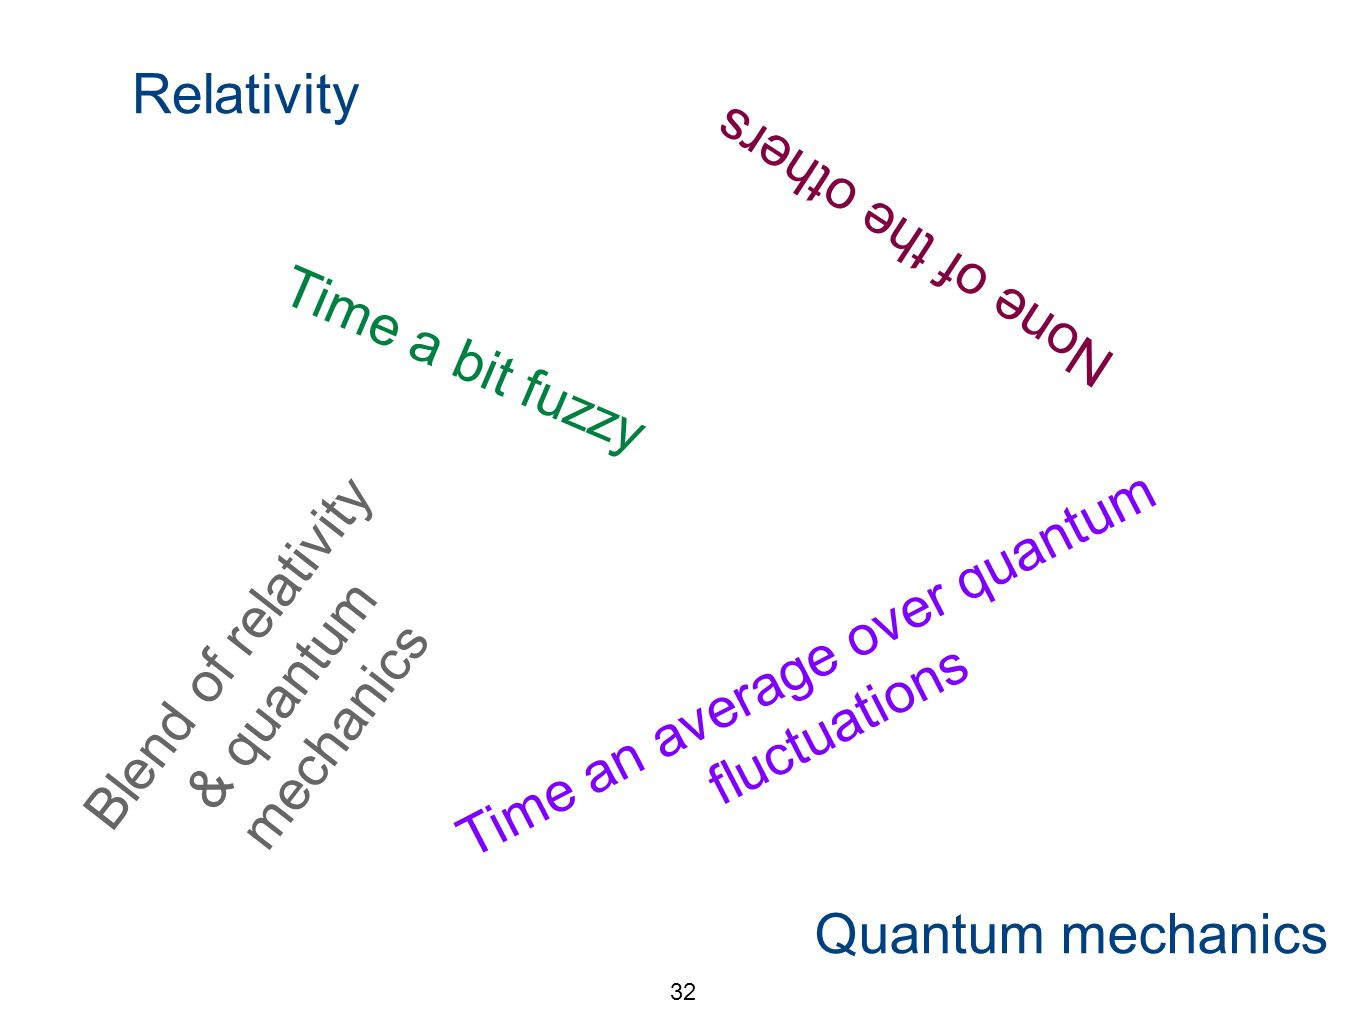 32 Relativity Quantum mechanics Time a bit fuzzy Time an average over quantum fluctuations None of the others Blend of relativity & quantum mechanics